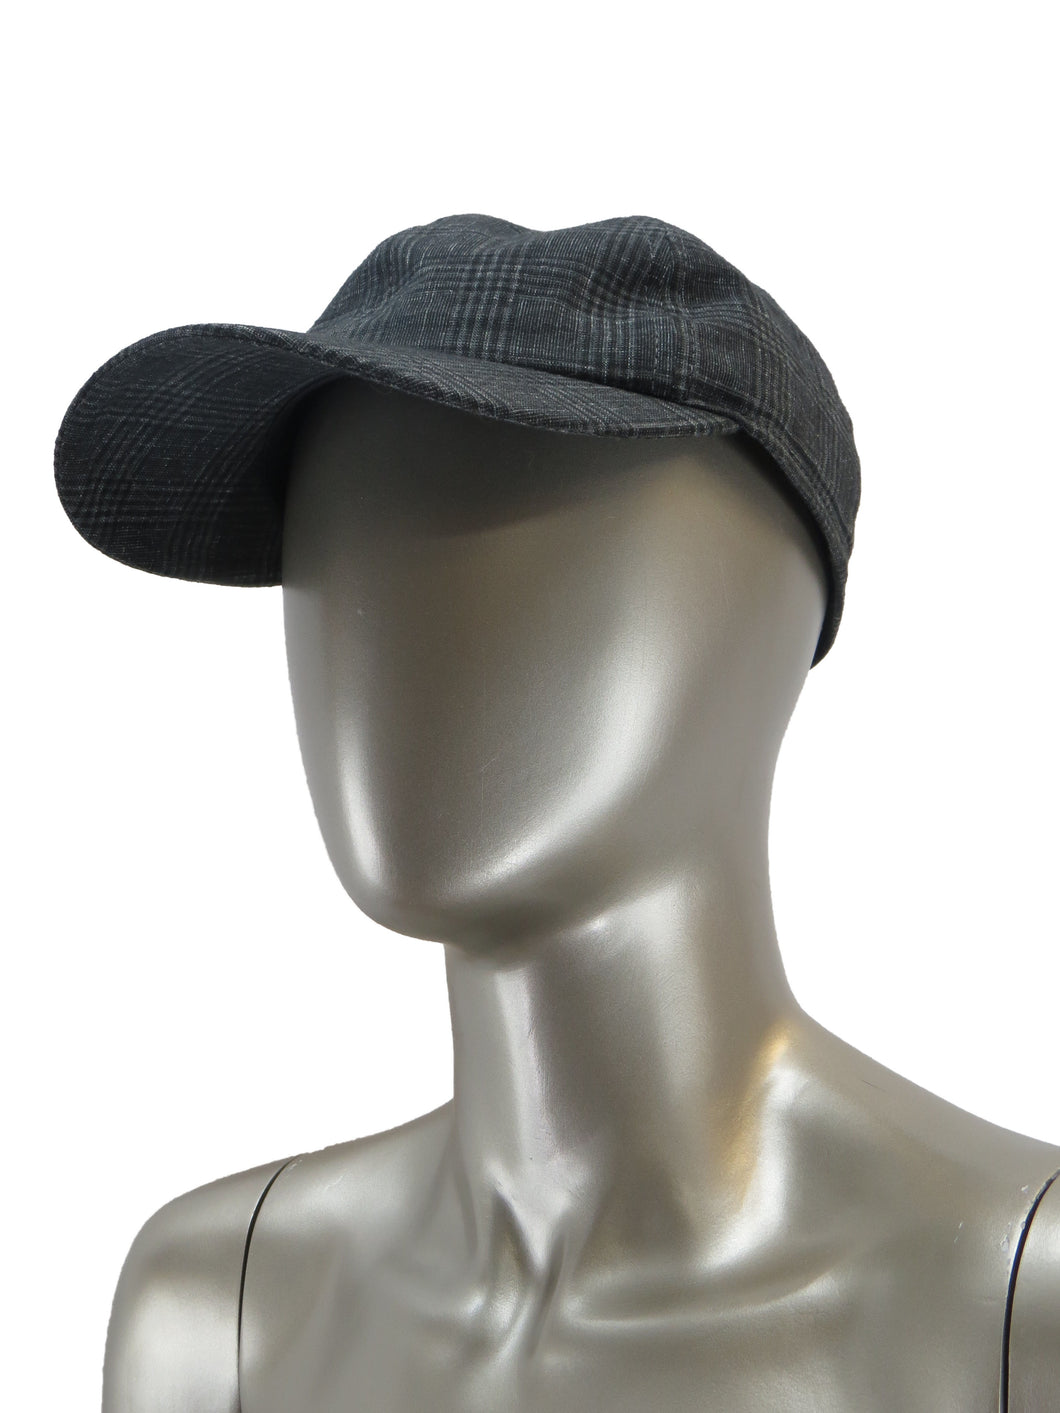 Göttmann | 3400633-15 | Ball Cap | Dark Grey